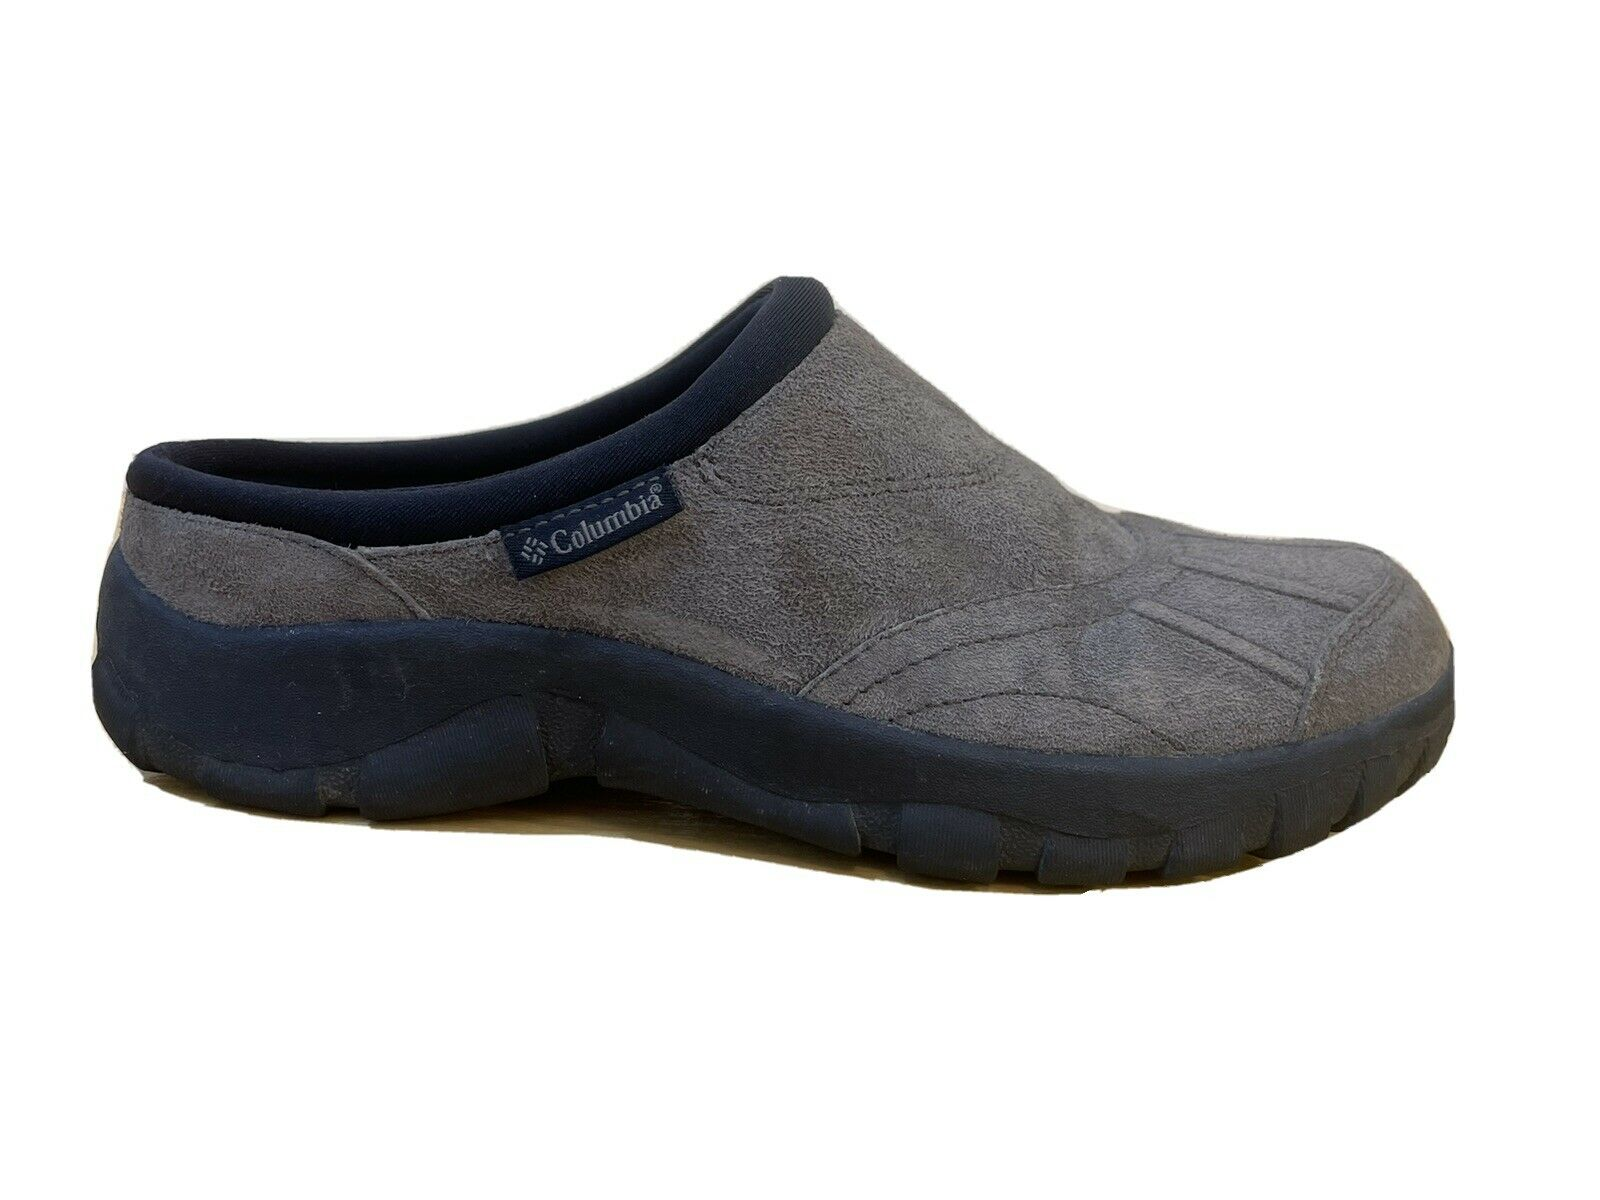 Columbia Womens Johnnie Lowback Clog Slip On Suede Shoe Gray Classic Size 8.5